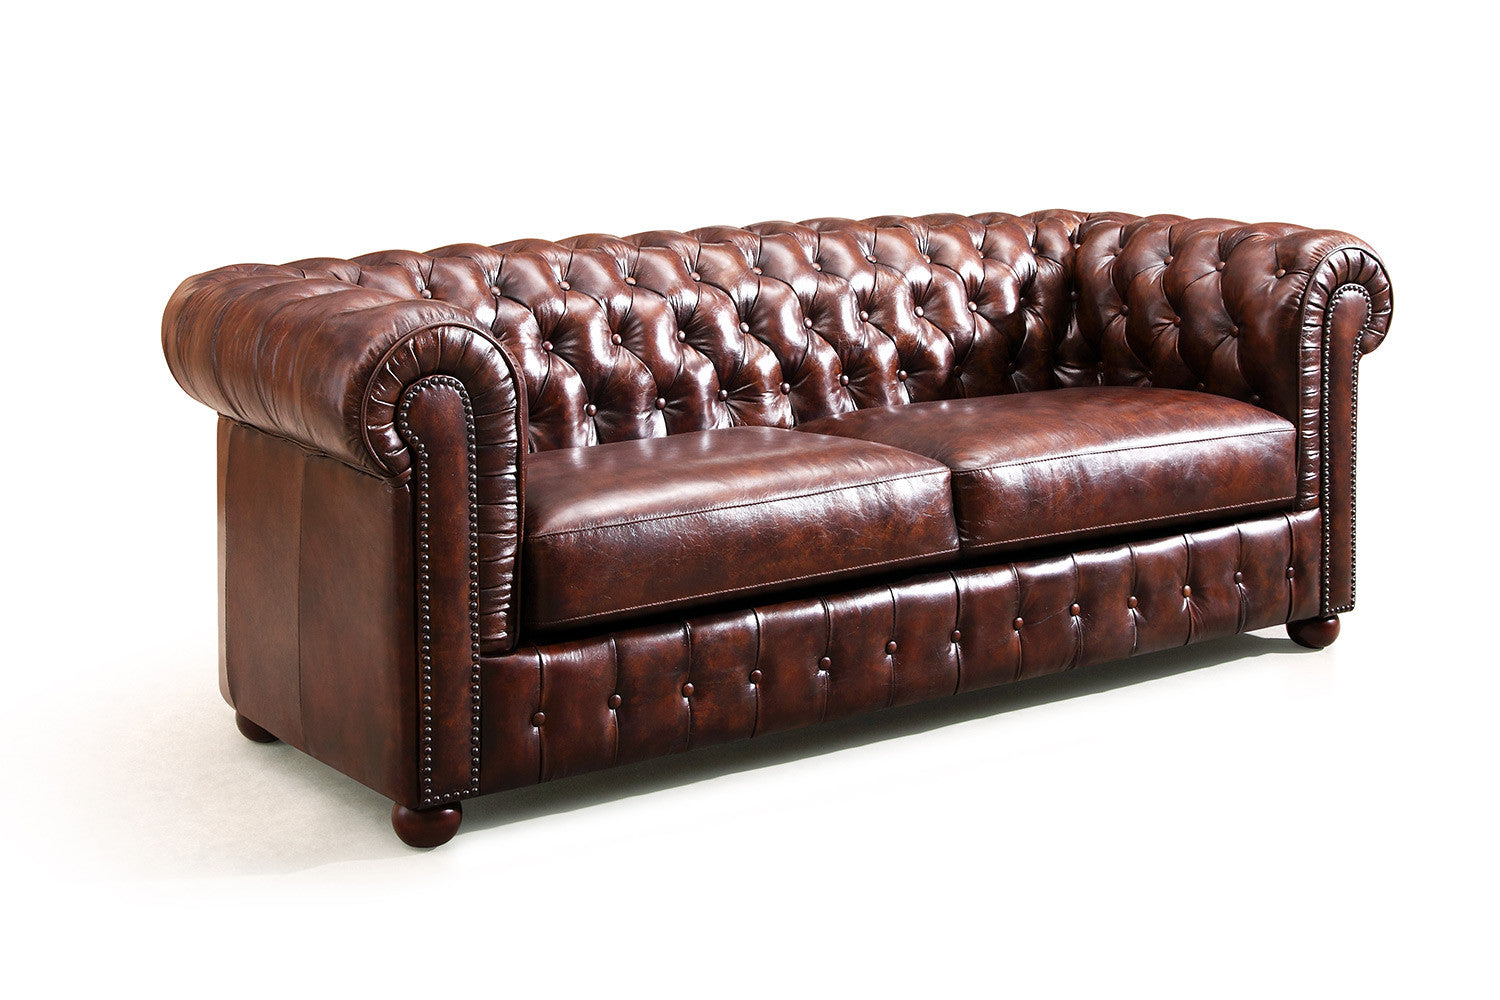 Canap chesterfield original rose moore - Canape chesterfield cuir ...